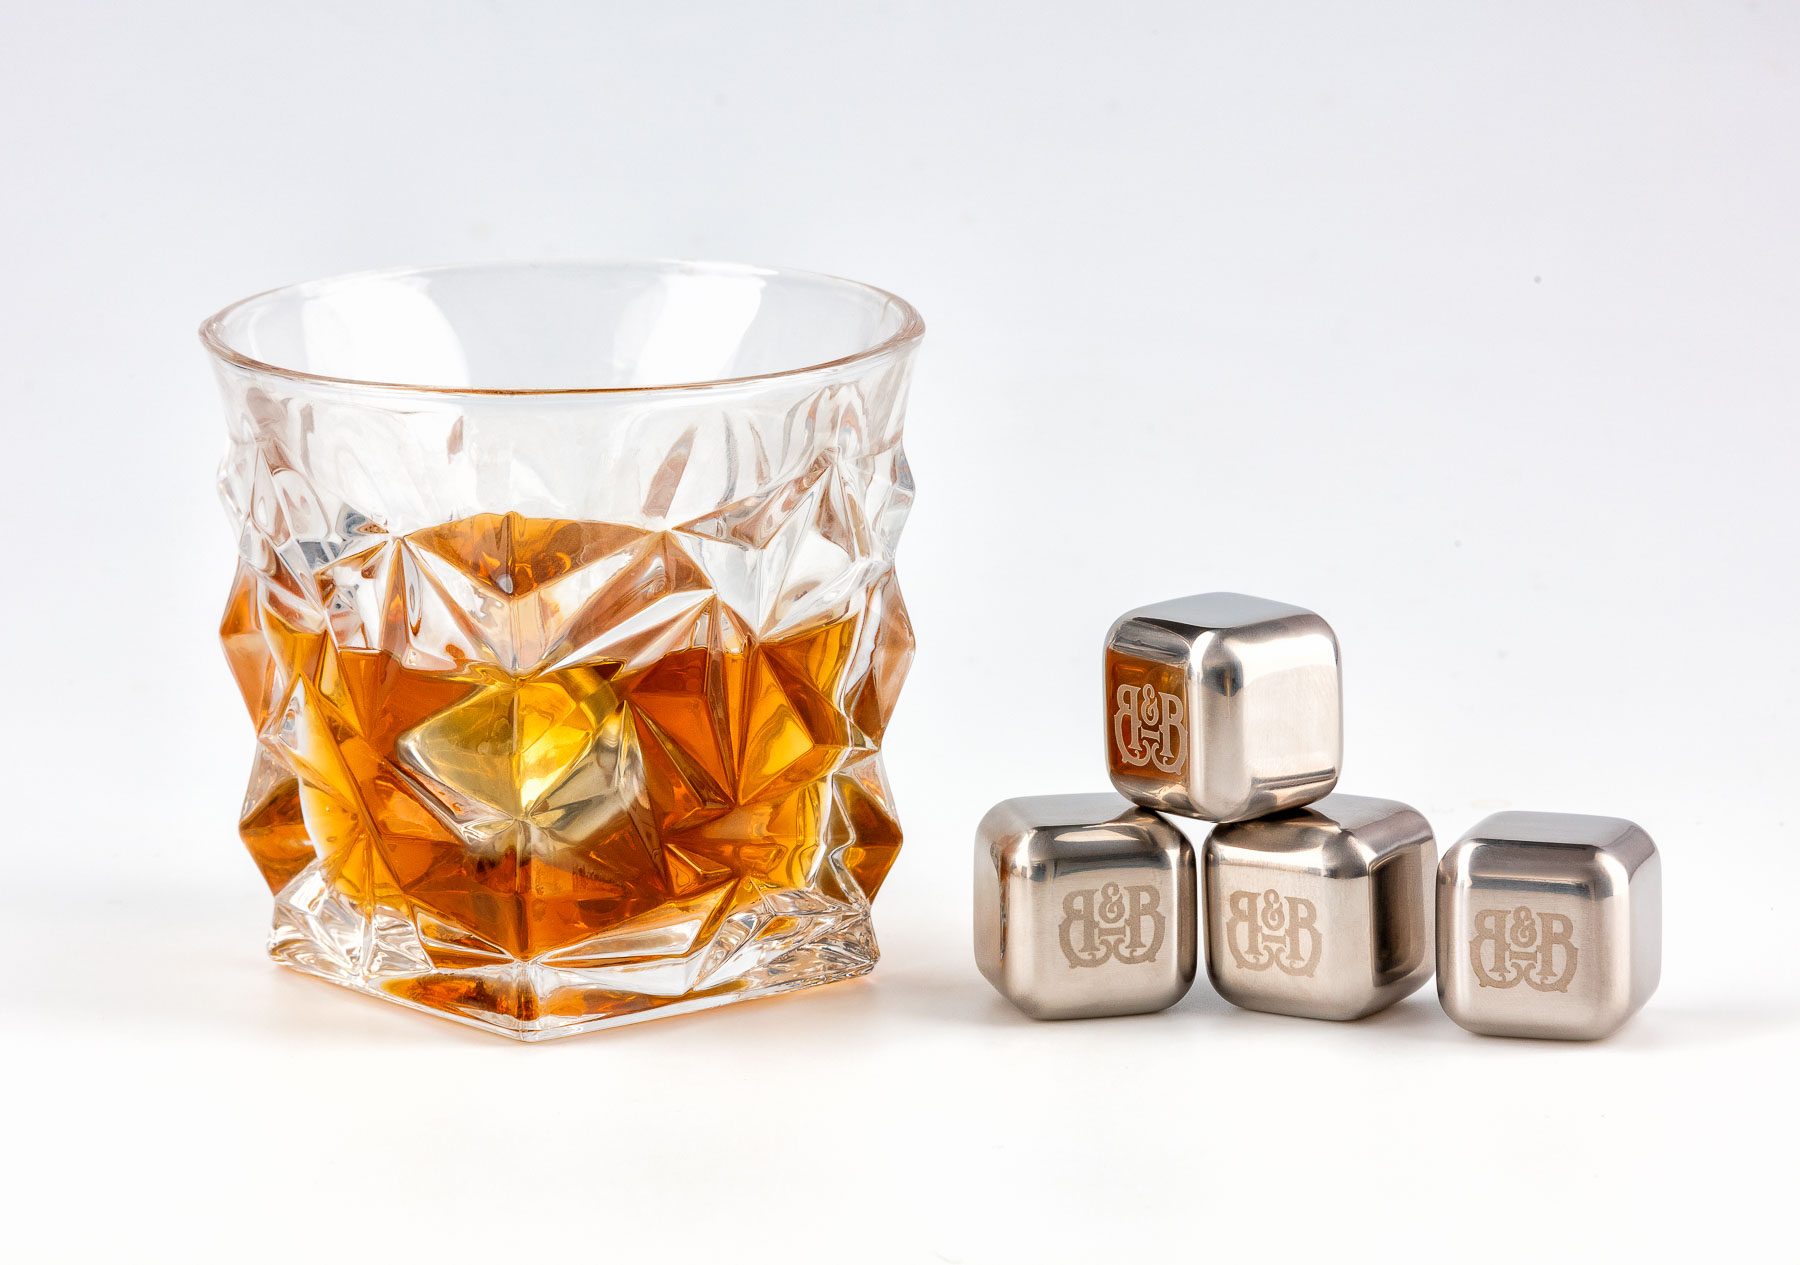 Bar&Barrel Whisky Cup detailed solo with steel cubes on side - Product photography from Zoom Studio Melbourne